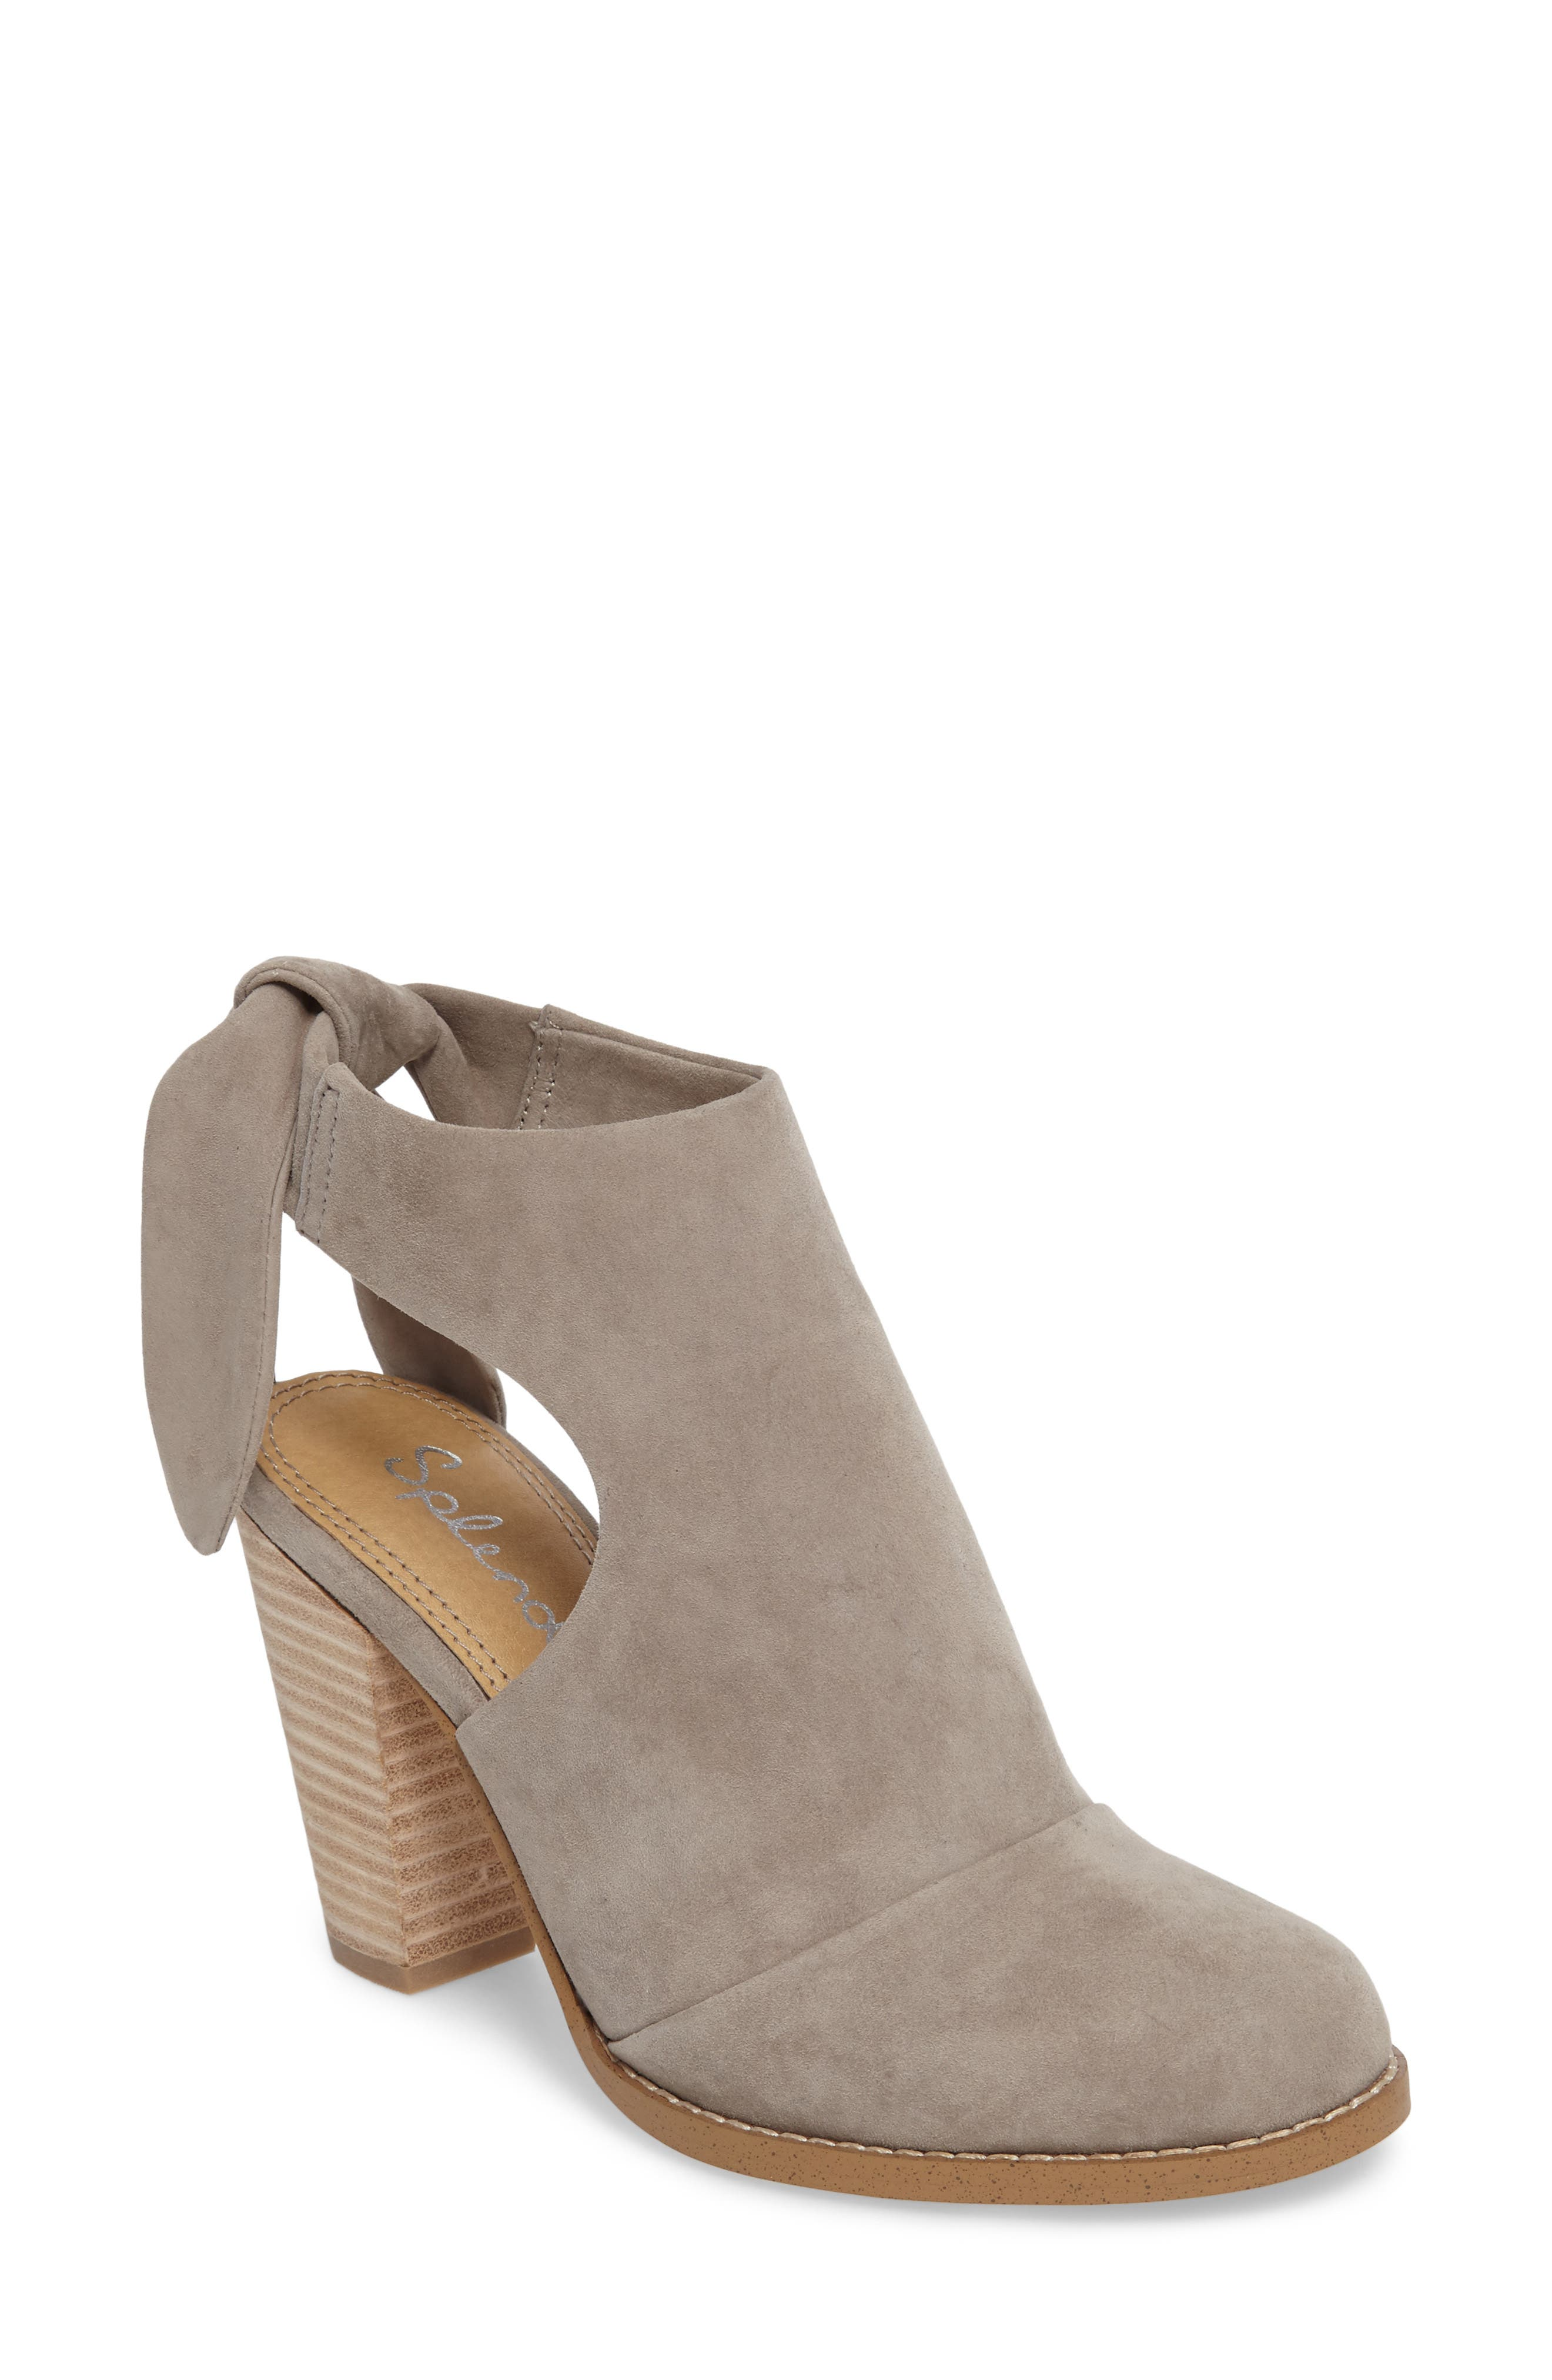 Danae Stacked Heel Bootie,                             Main thumbnail 2, color,